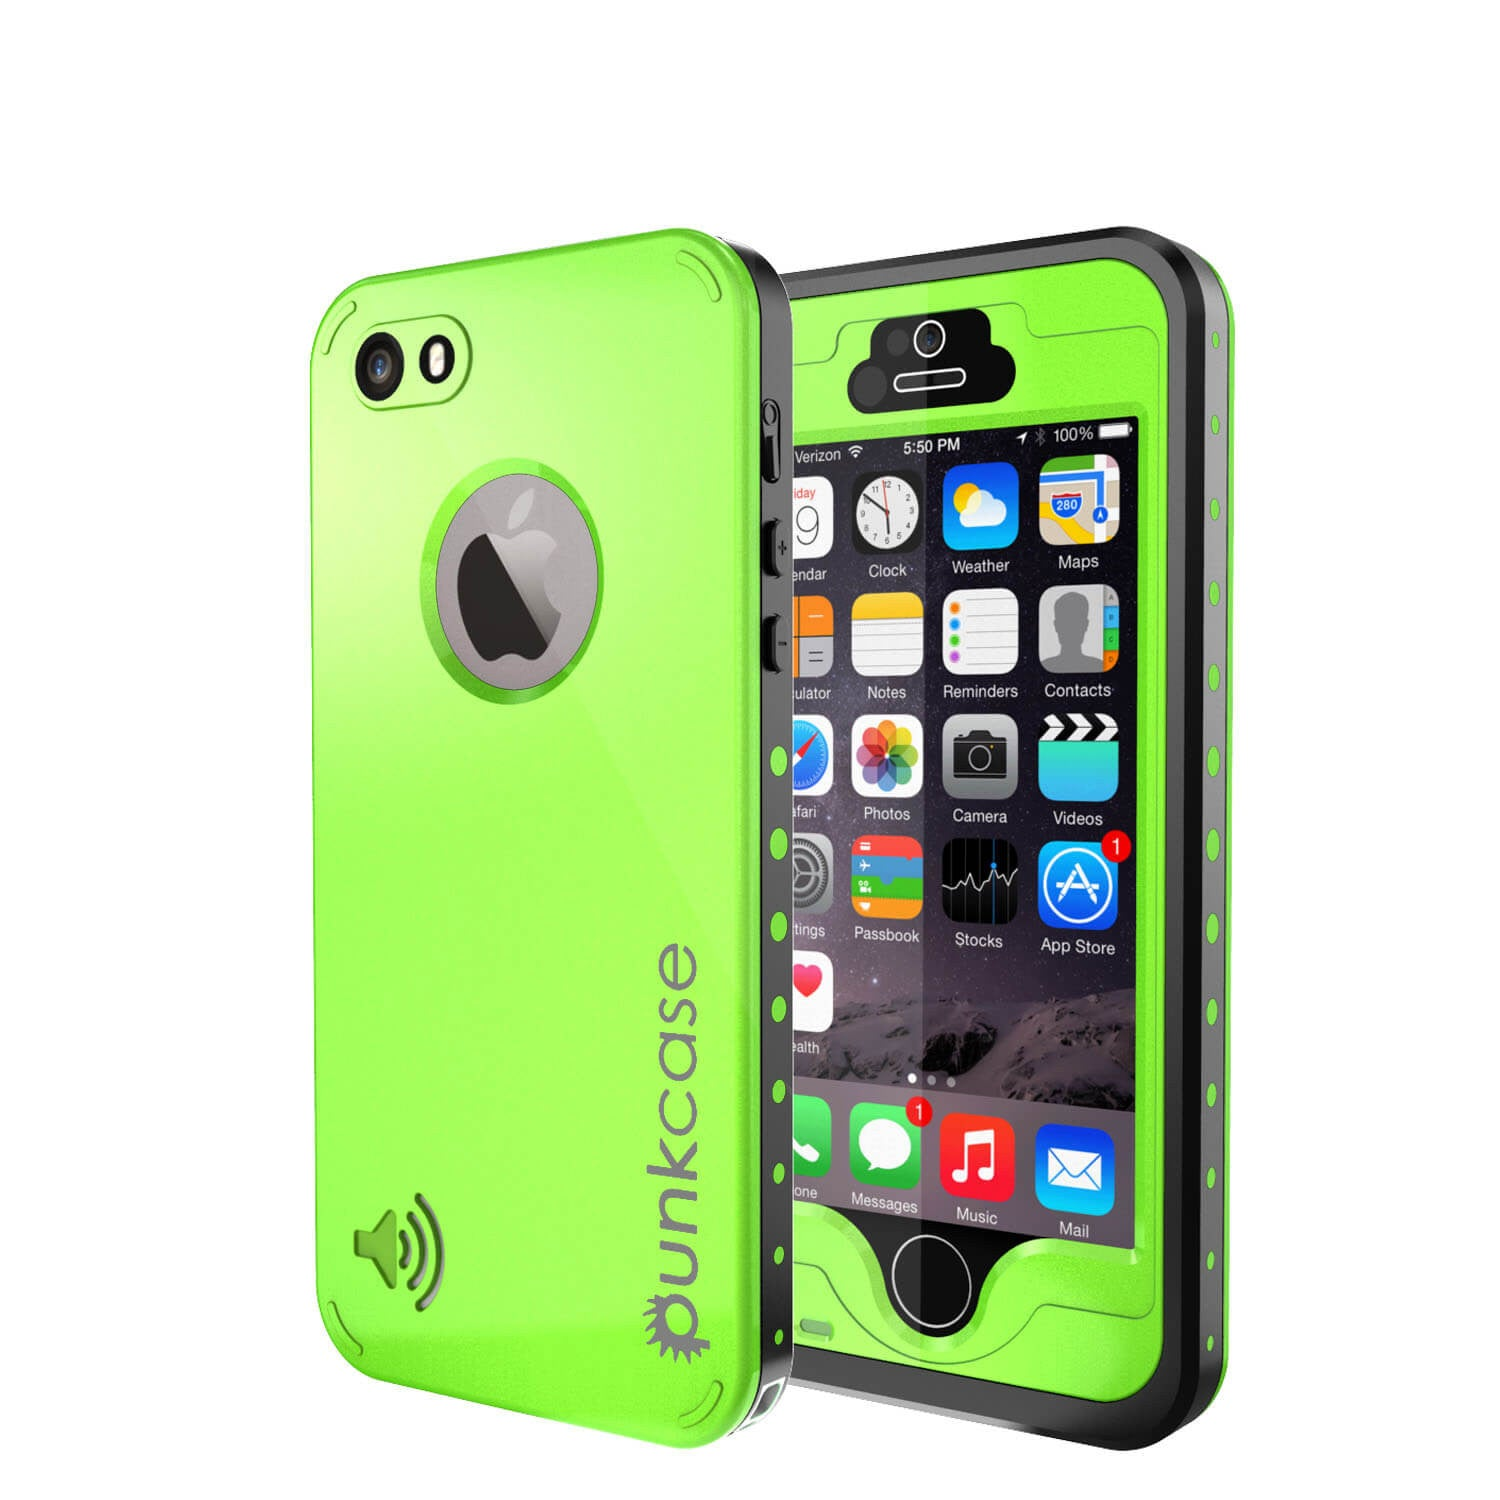 iphone 5s waterproof case iphone 5s 5 waterproof punkcase studstar 2224